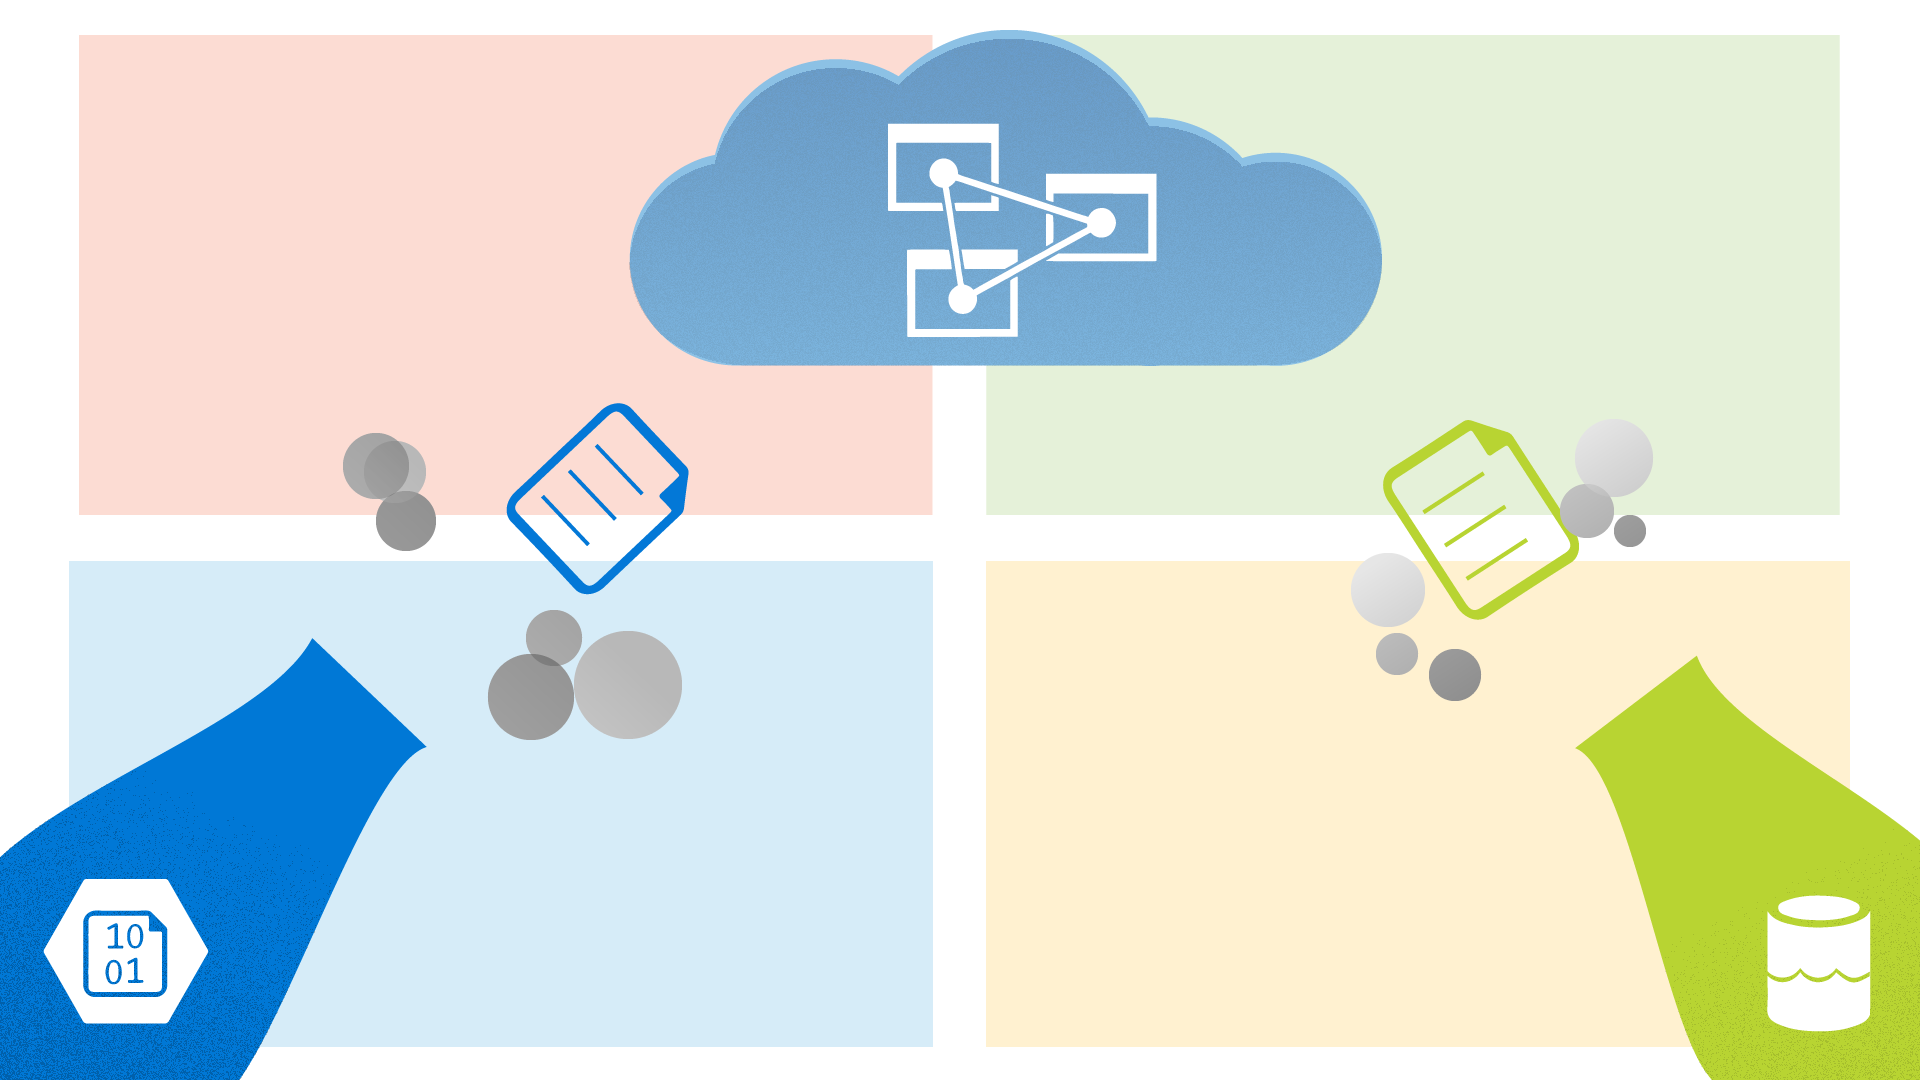 Two comical canons with the logos of azure data lake and azure blob storage firing files at a cloud with the logo of azure cloud services